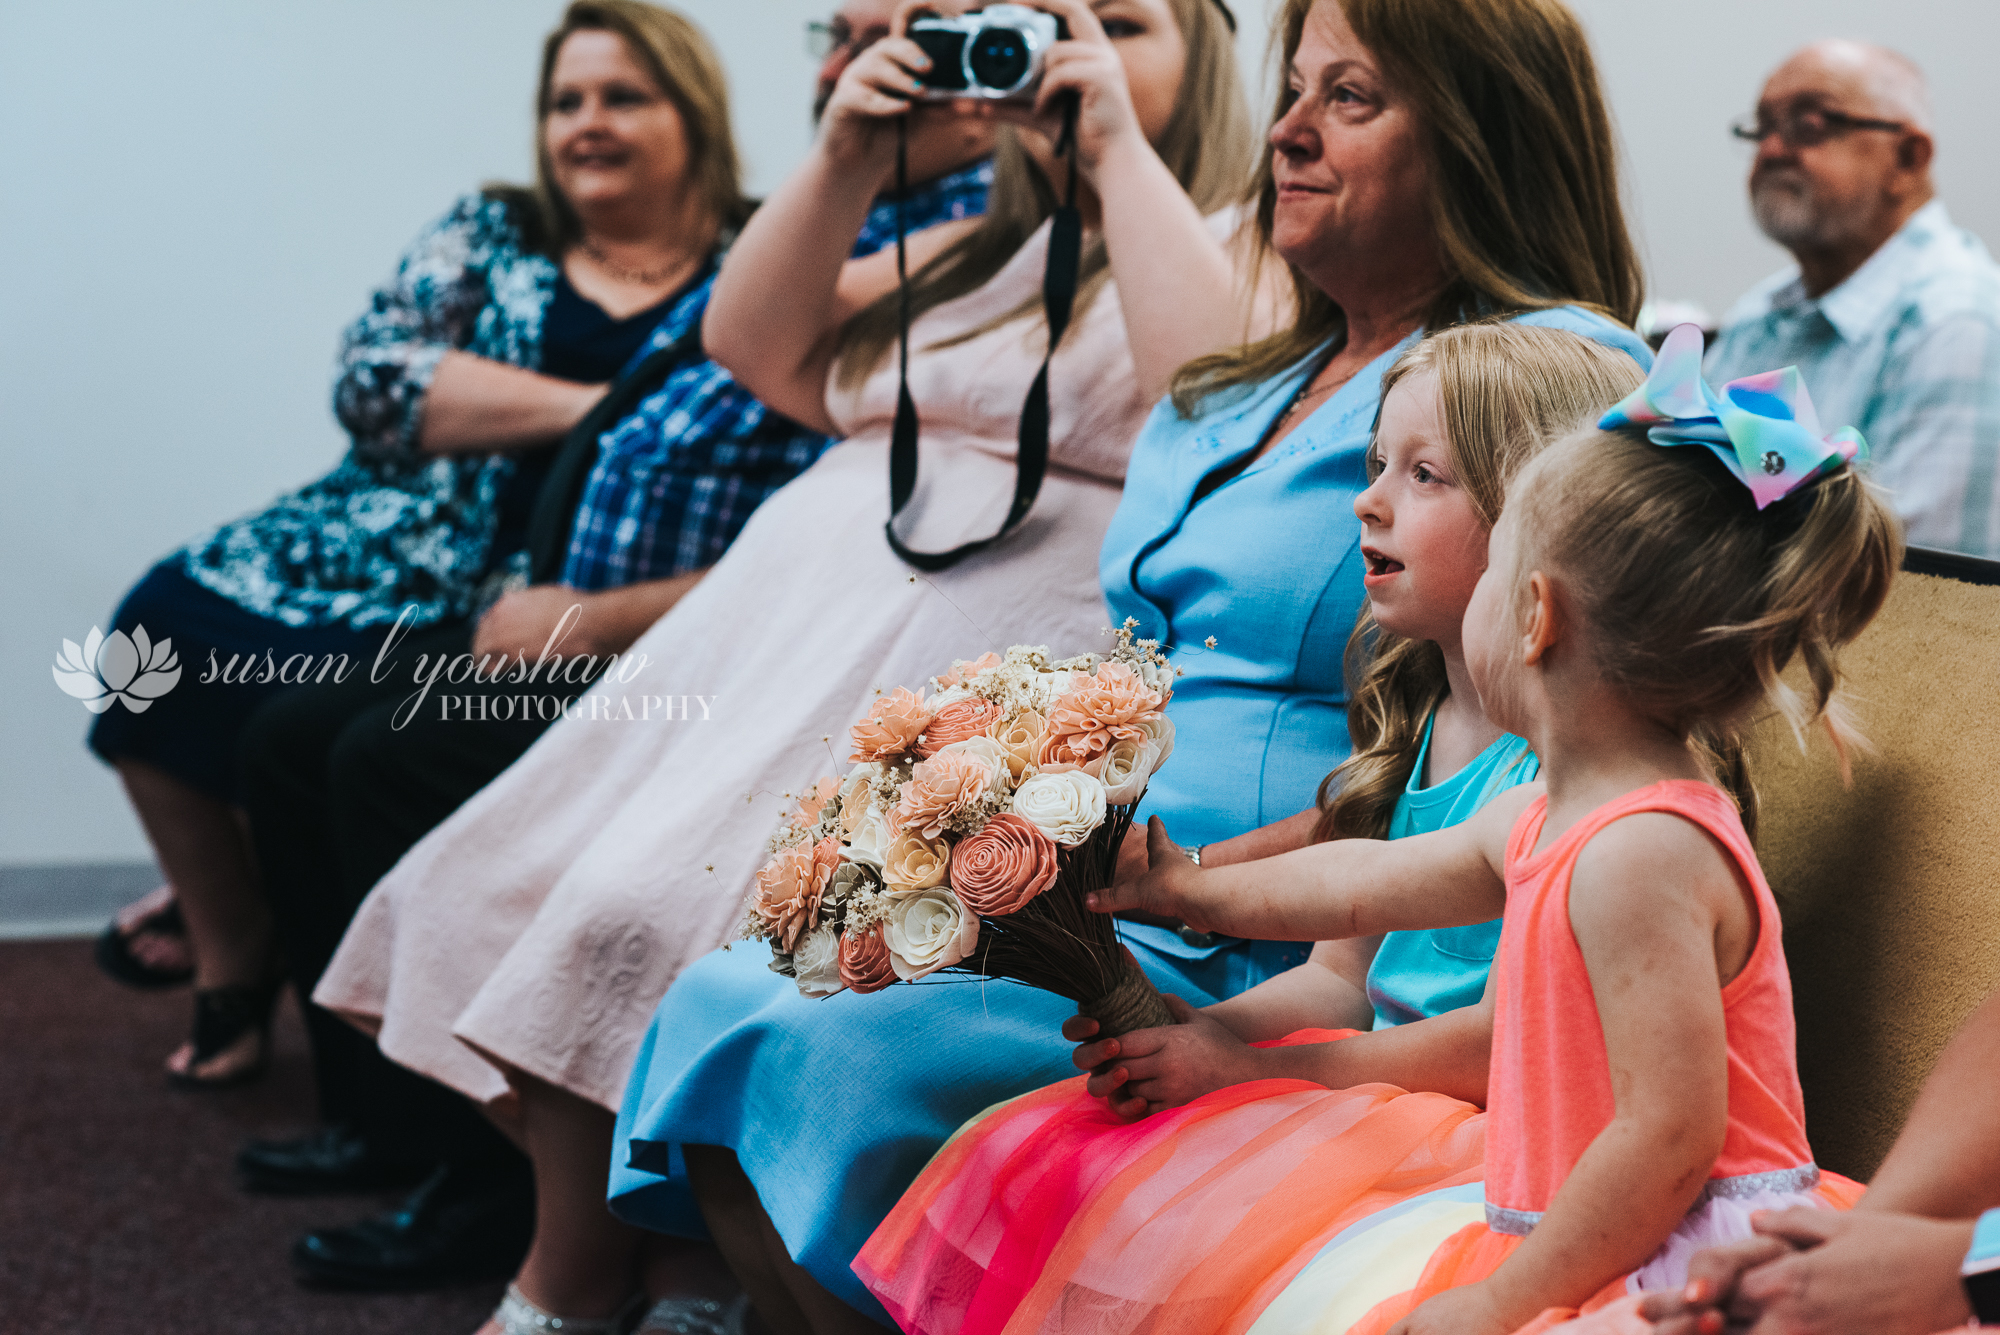 Bill and Sarah Wedding Photos 06-08-2019 SLY Photography -26.jpg